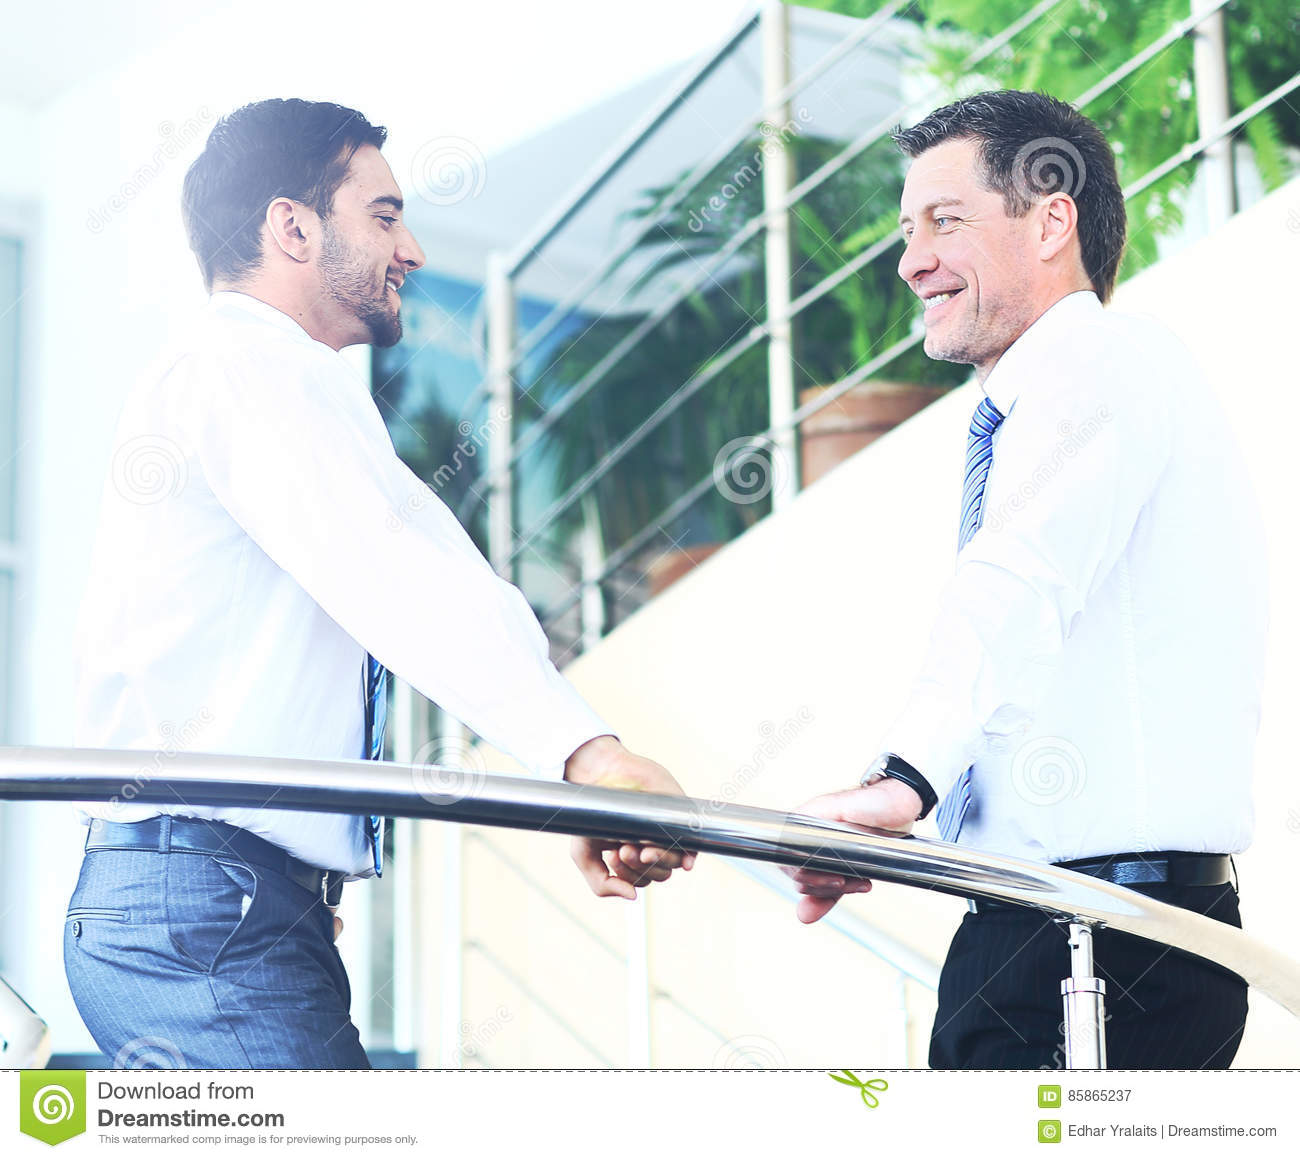 Business people handshake greeting deal at work photo free download - Business People Meeting In A Modern Office